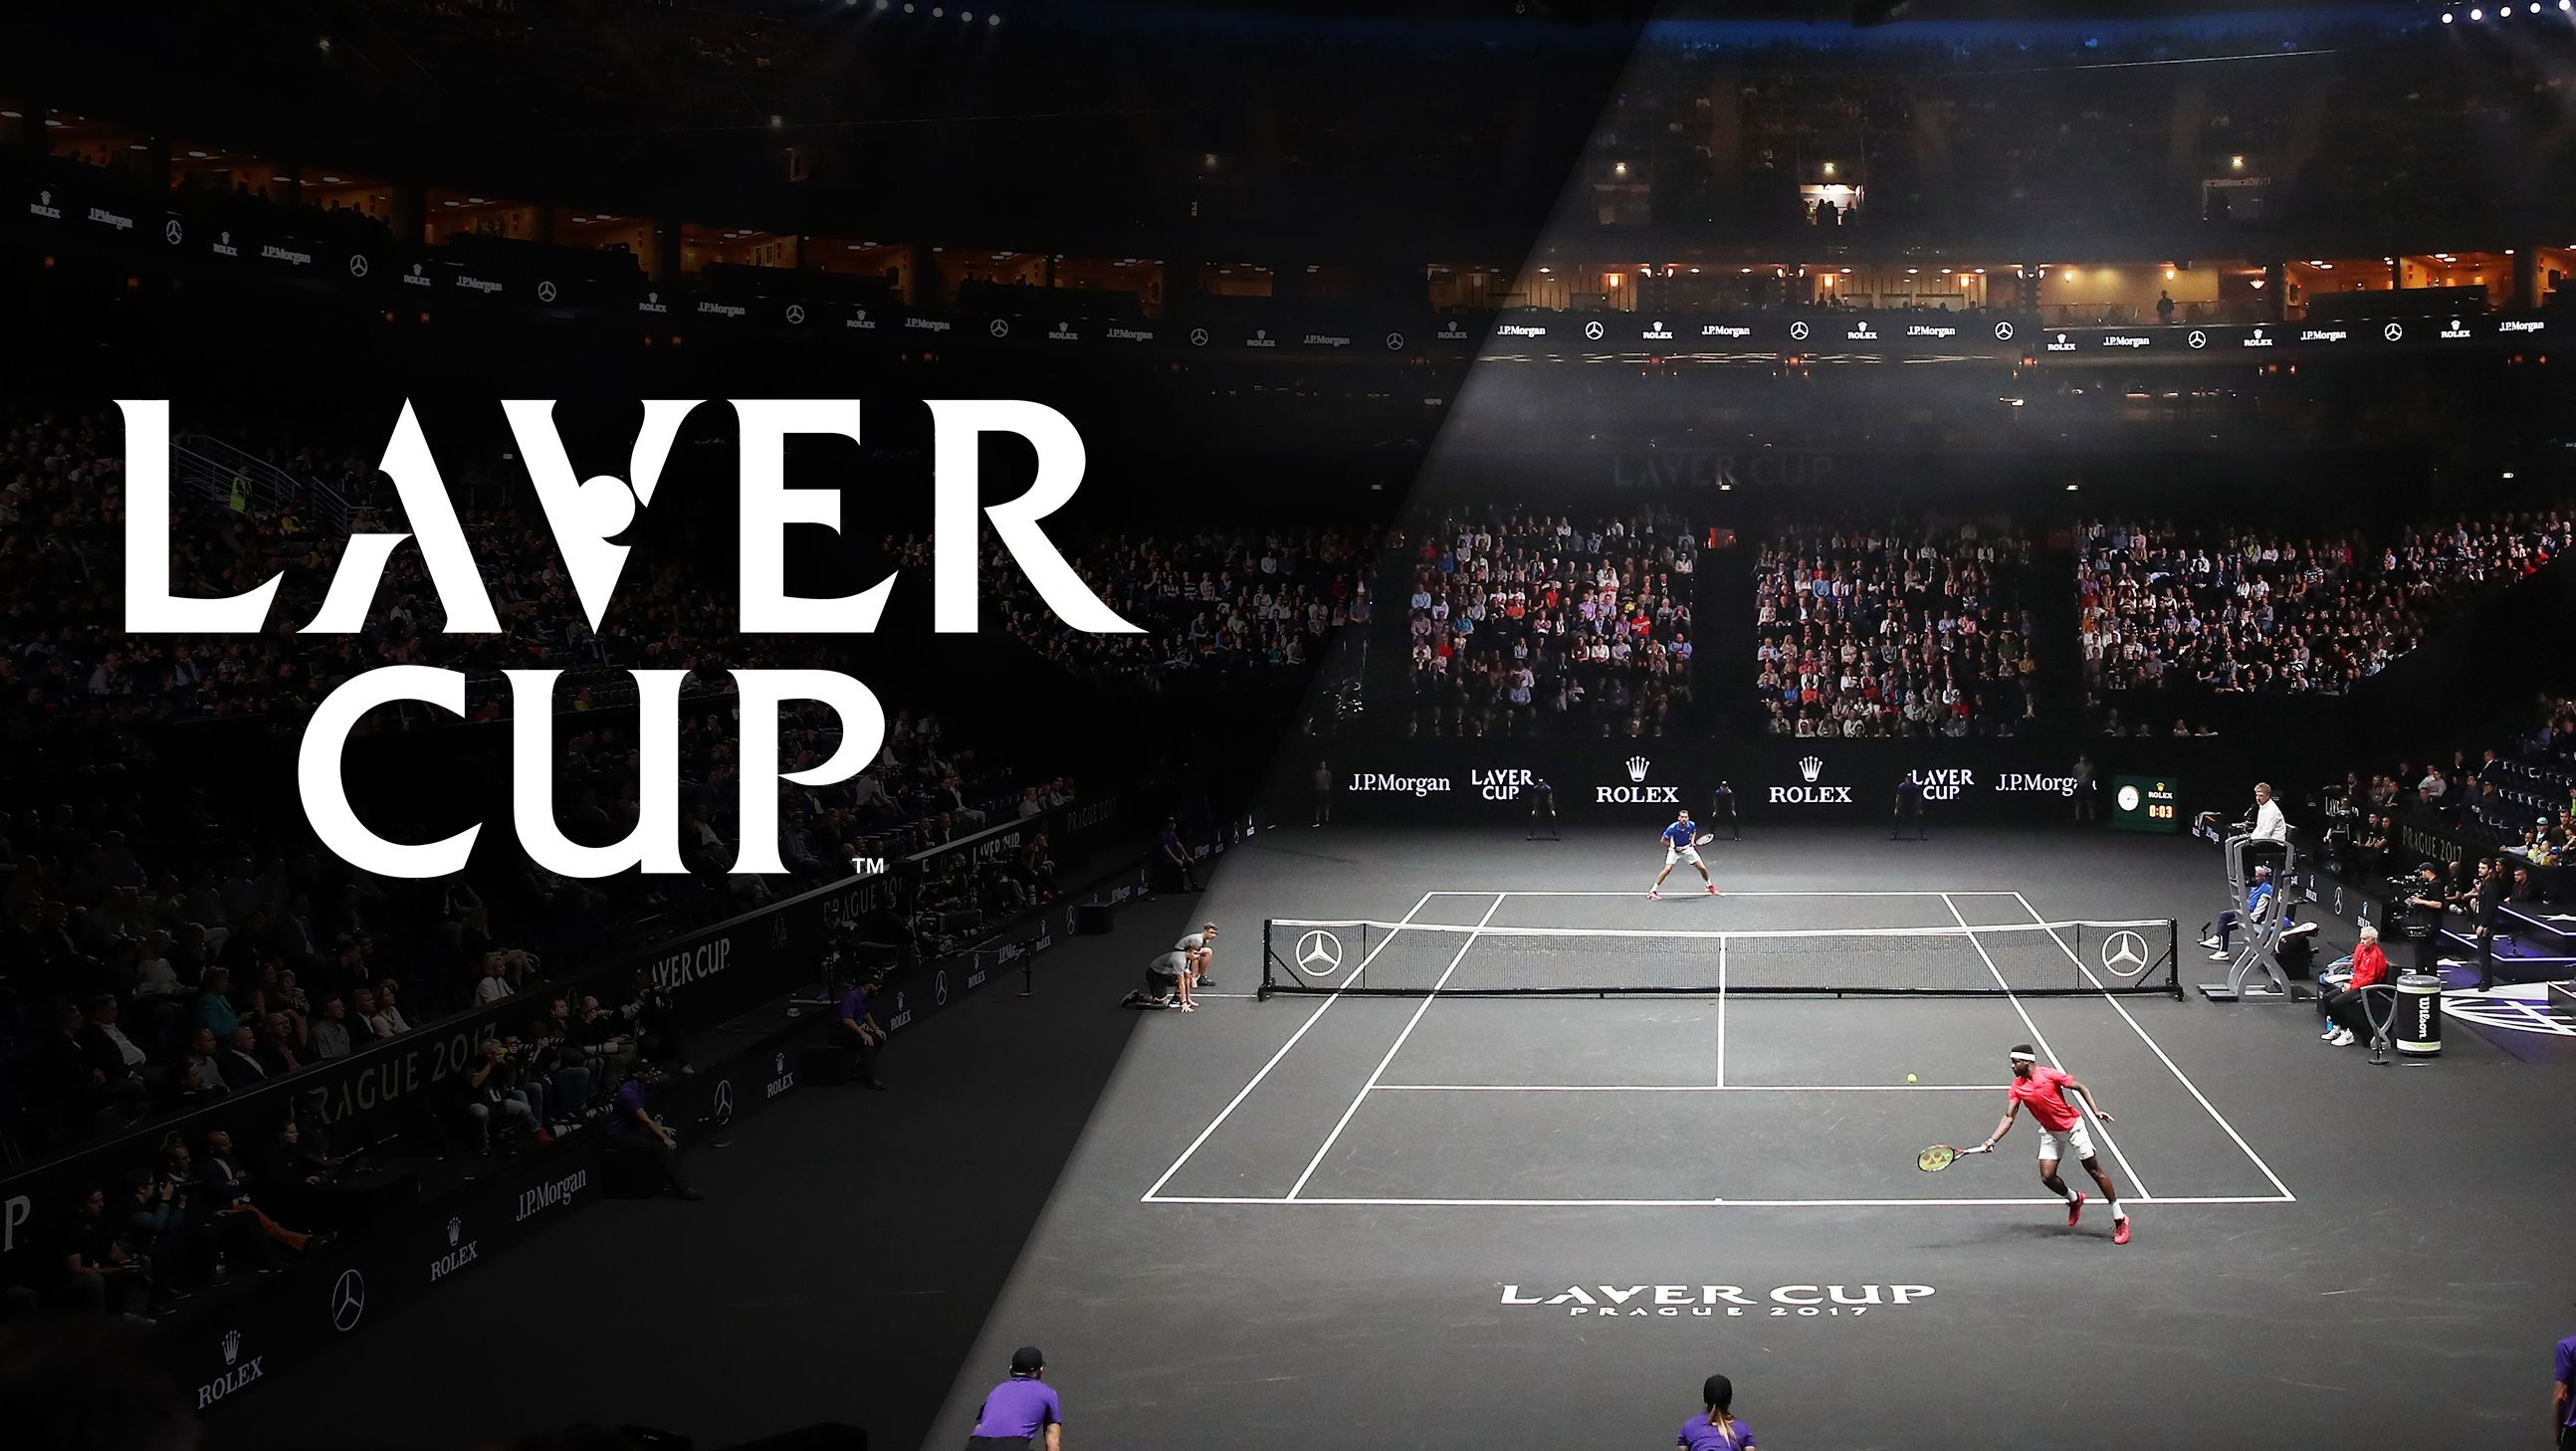 Laver Cup (Day 3 - Final Session)